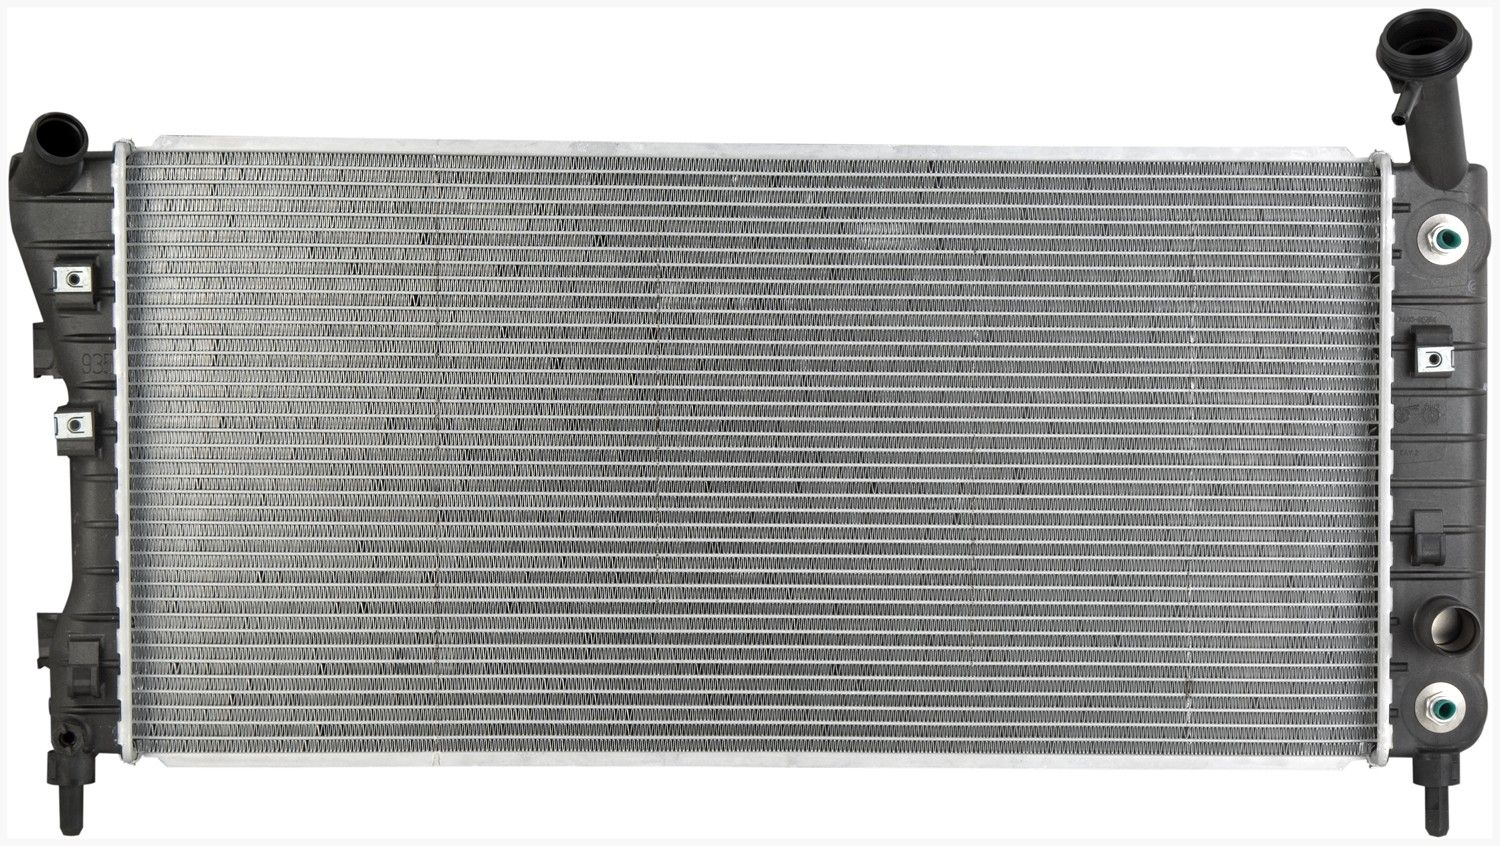 Chevrolet Impala Radiator Replacement Acdelco Apdi Csf 1966 Chevy 2004 N A 6 Cyl 38l 8012710